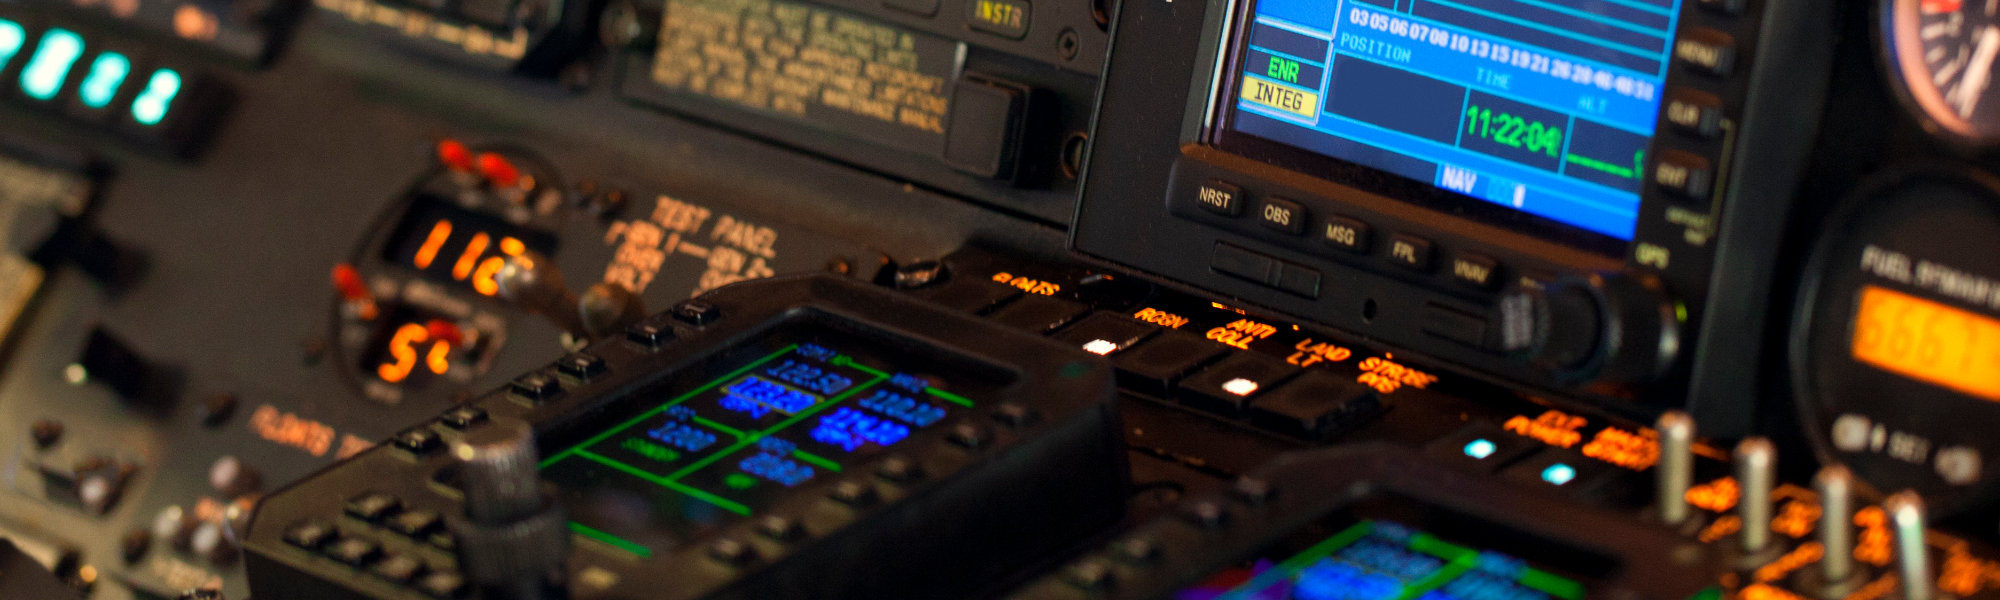 Instrument repairs, avionics and accessories available from QAI Aerospace